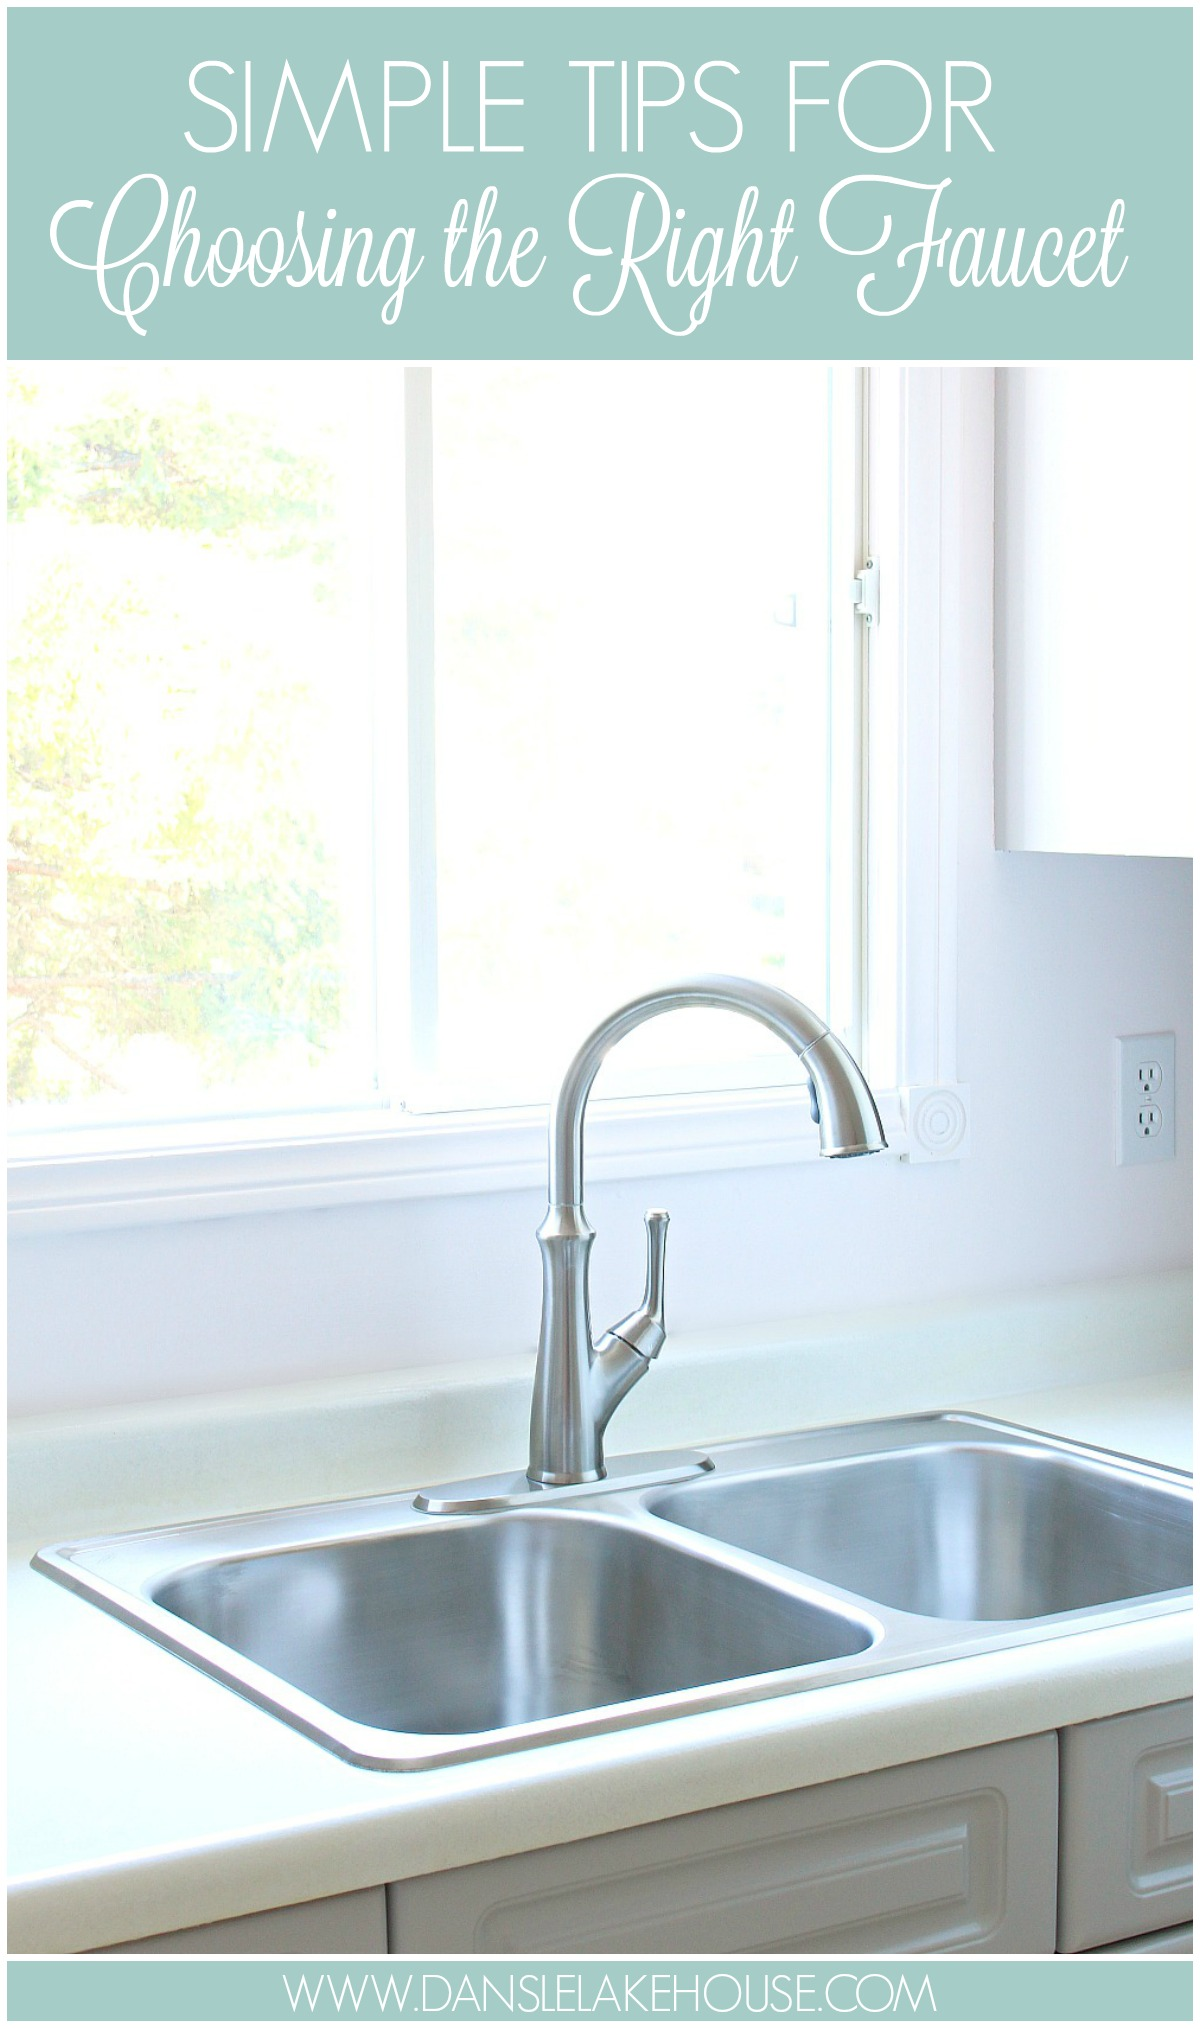 Simple Tips for Choosing the Right Kitchen Faucet | Pfister Tamera Faucet Review | Dans le Lakehouse #kitchenmakeover #kitchenfaucet #tips